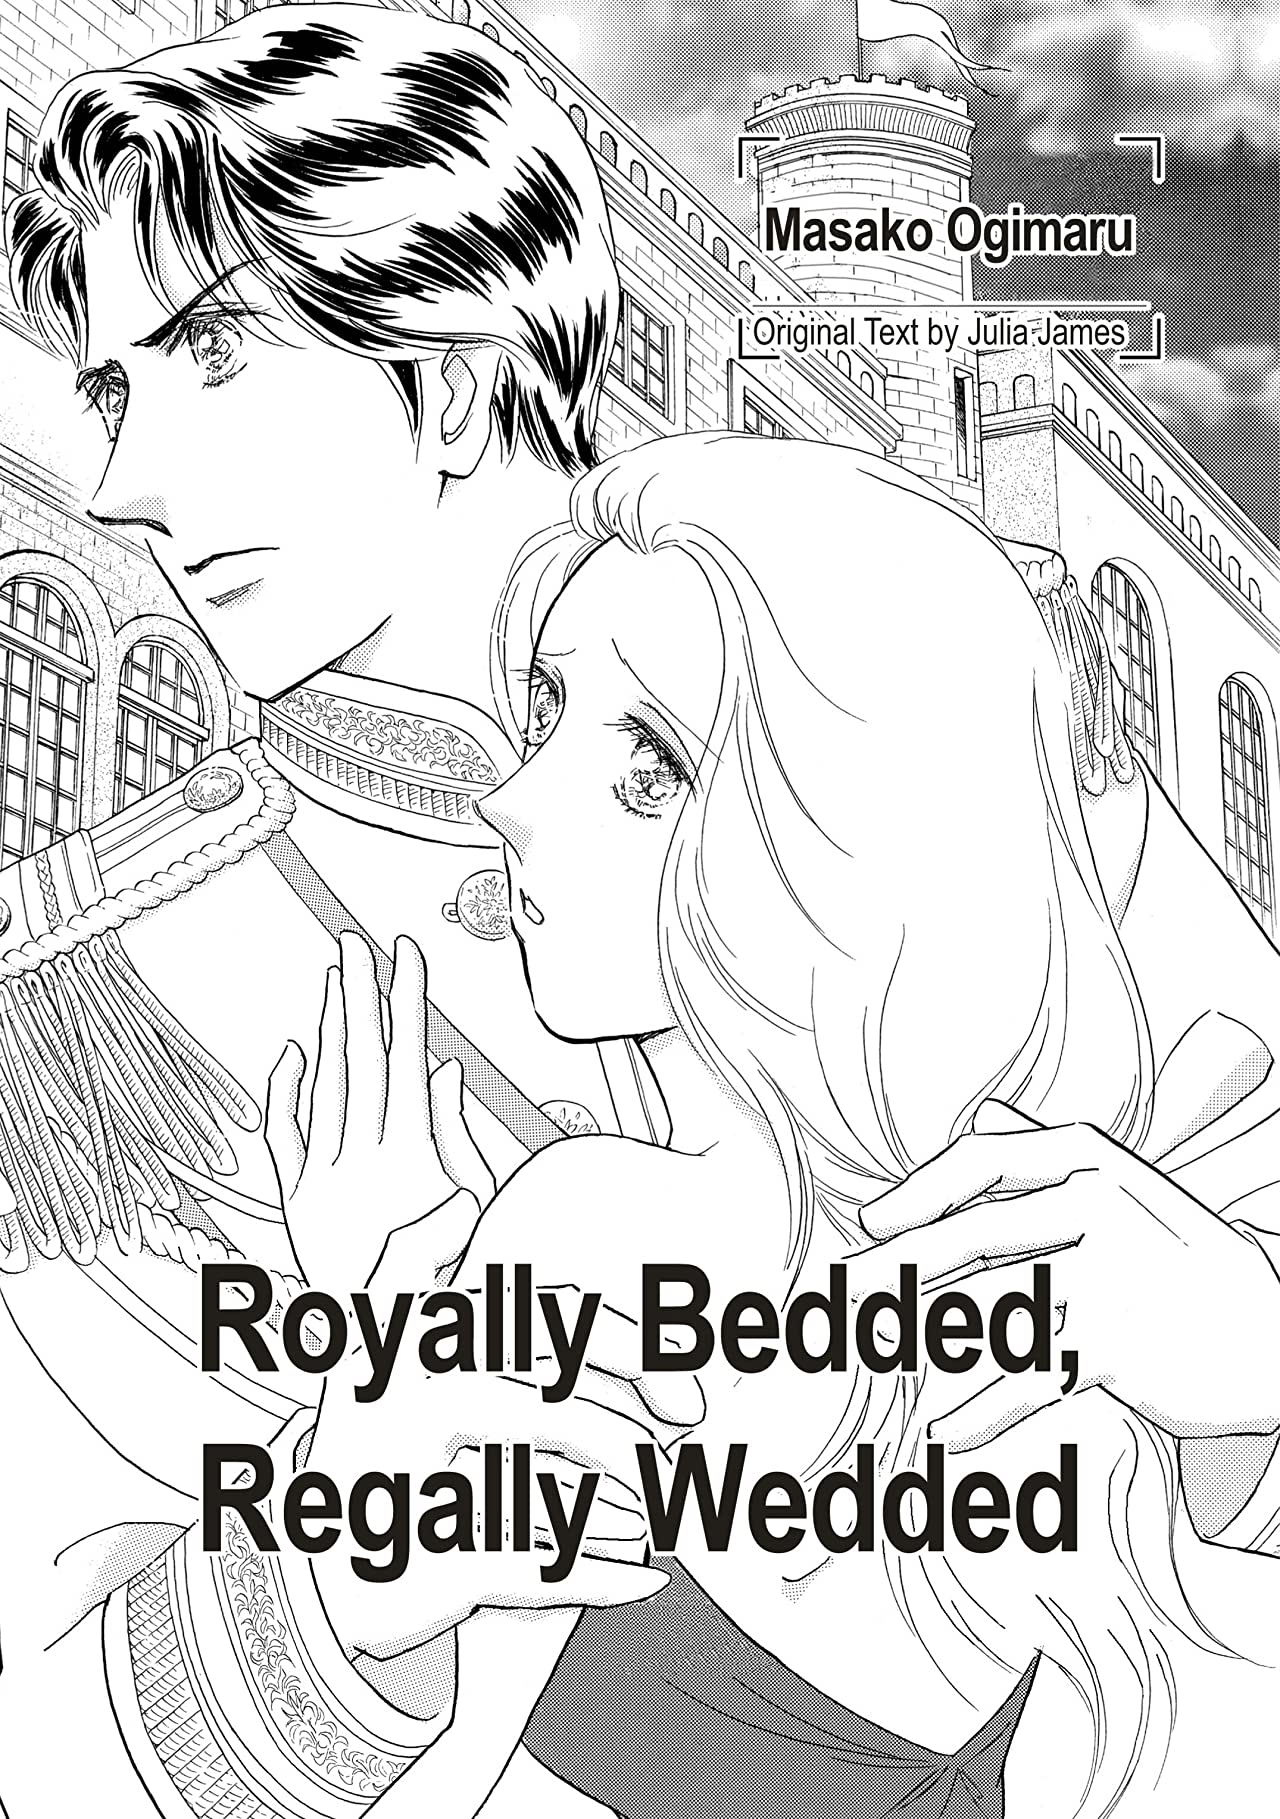 Royally Bedded, Regally Wedded: Preview